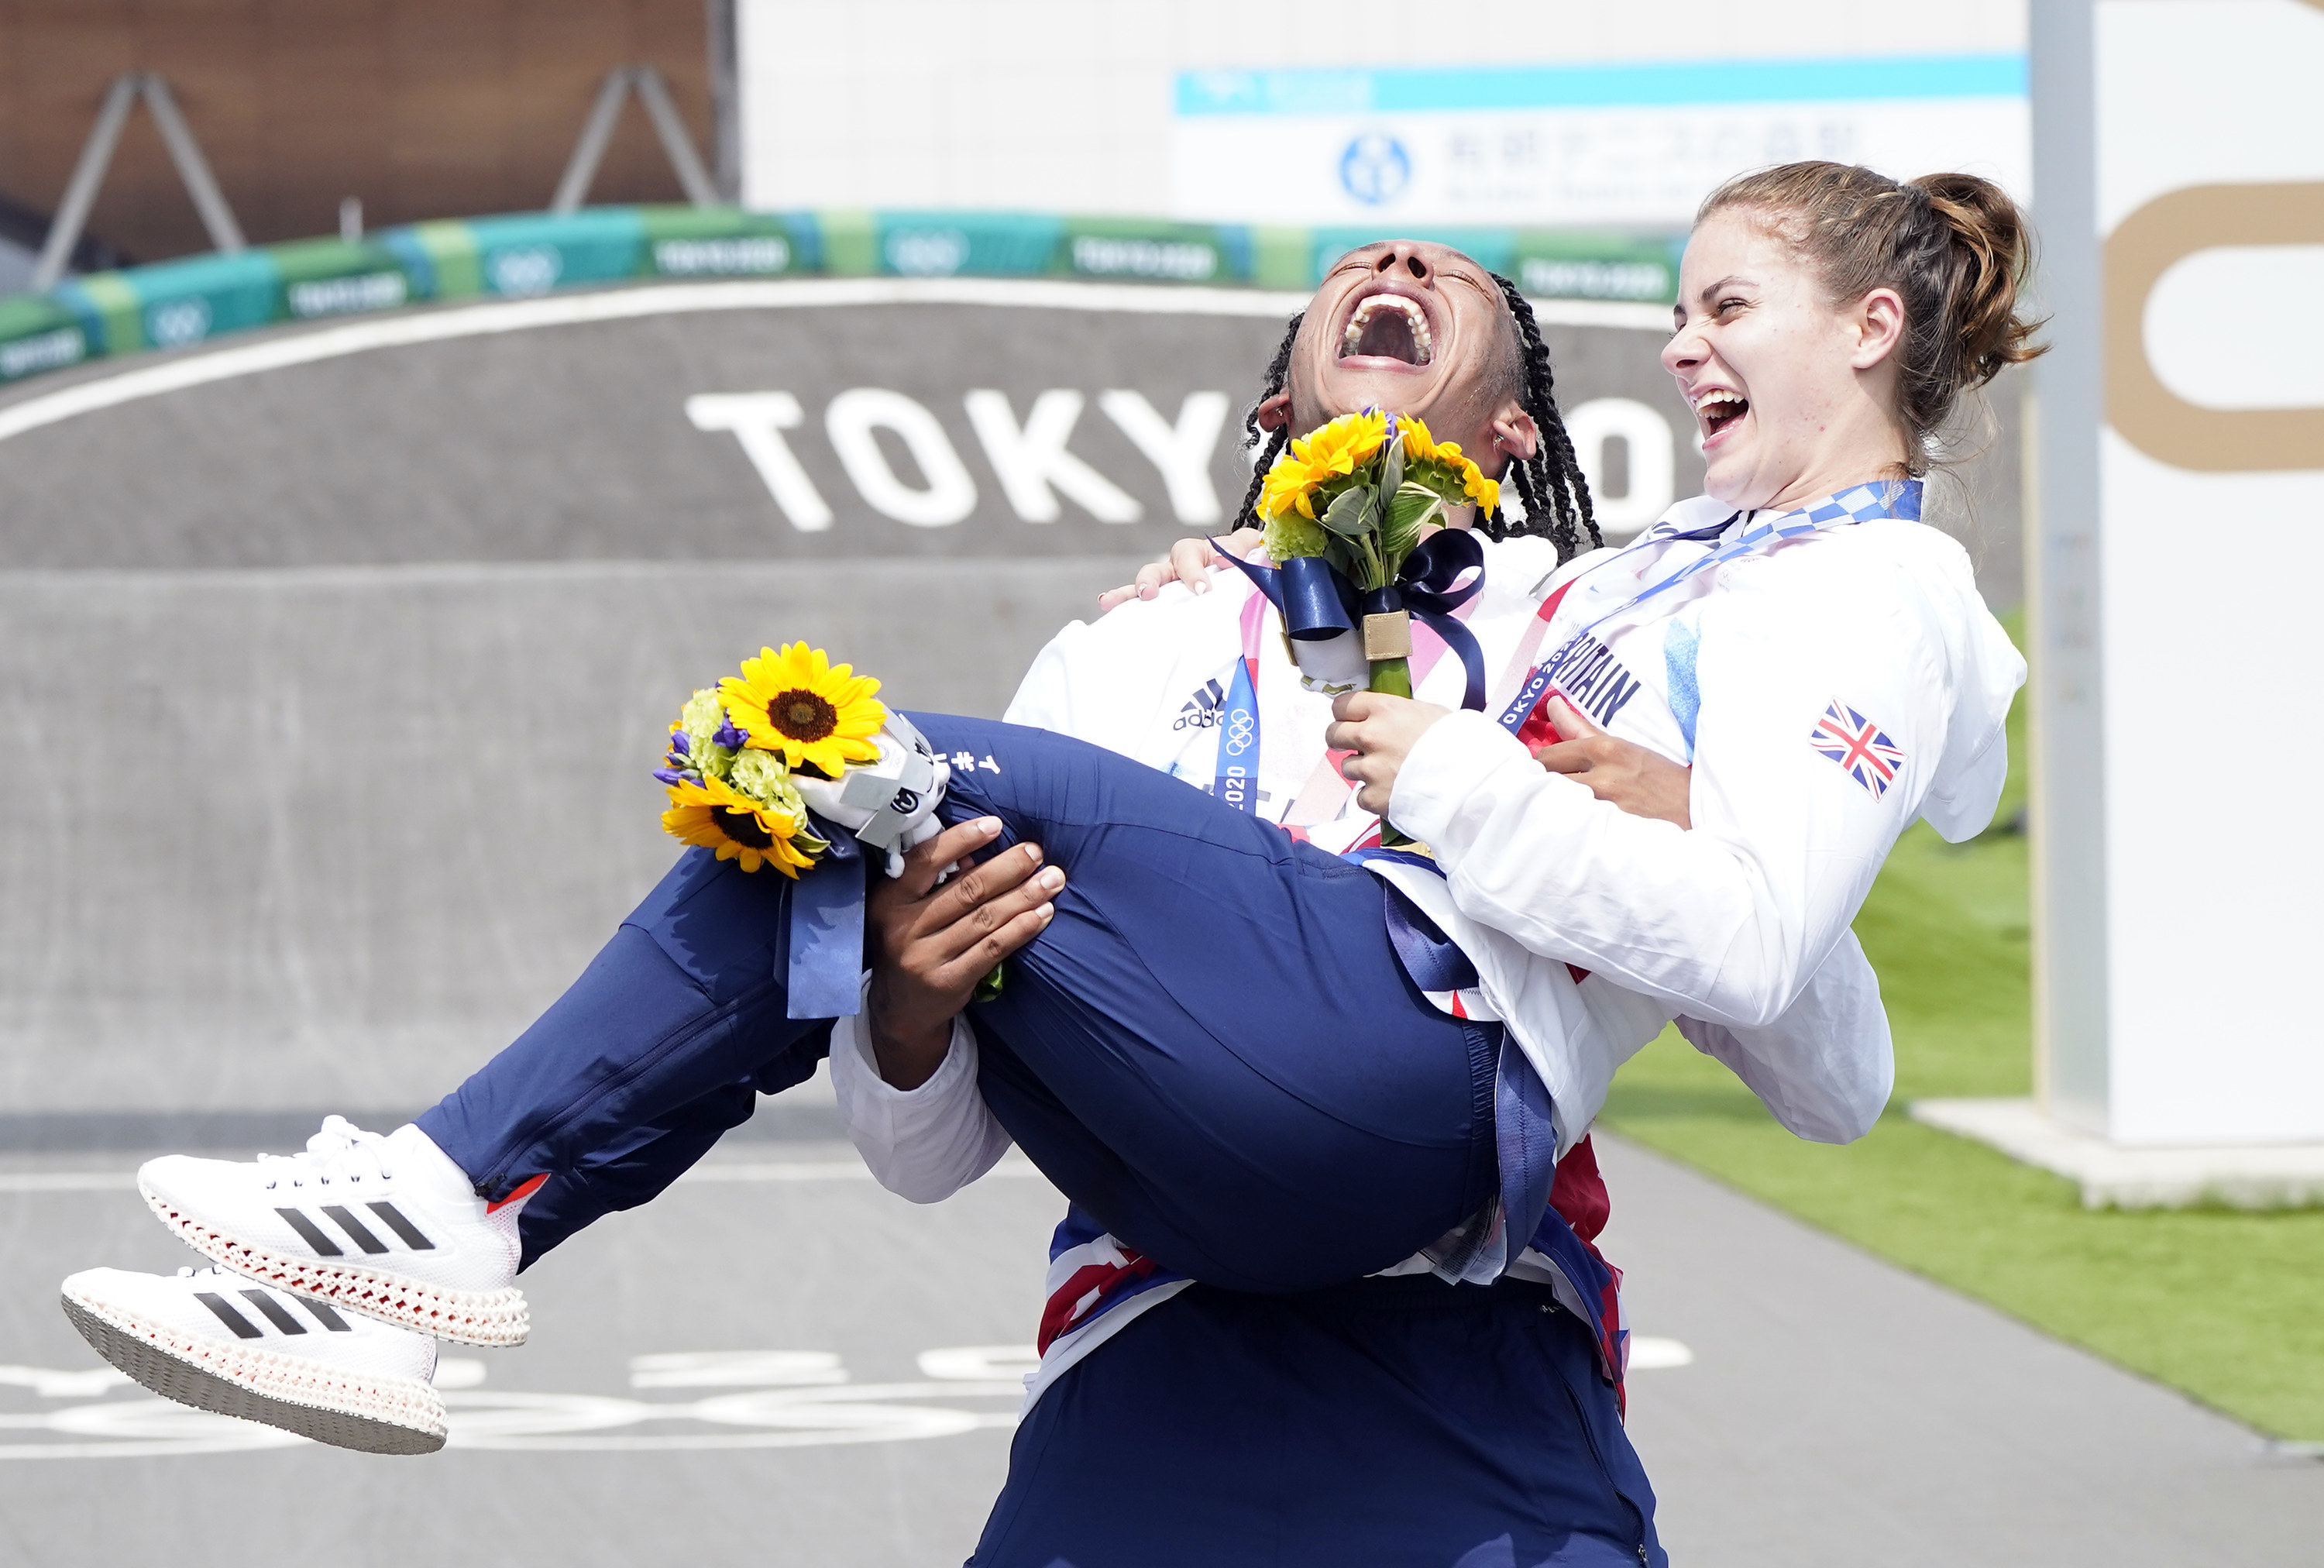 A male BMX athlete holds up a female BMX athlete in celebration of their Olympic win